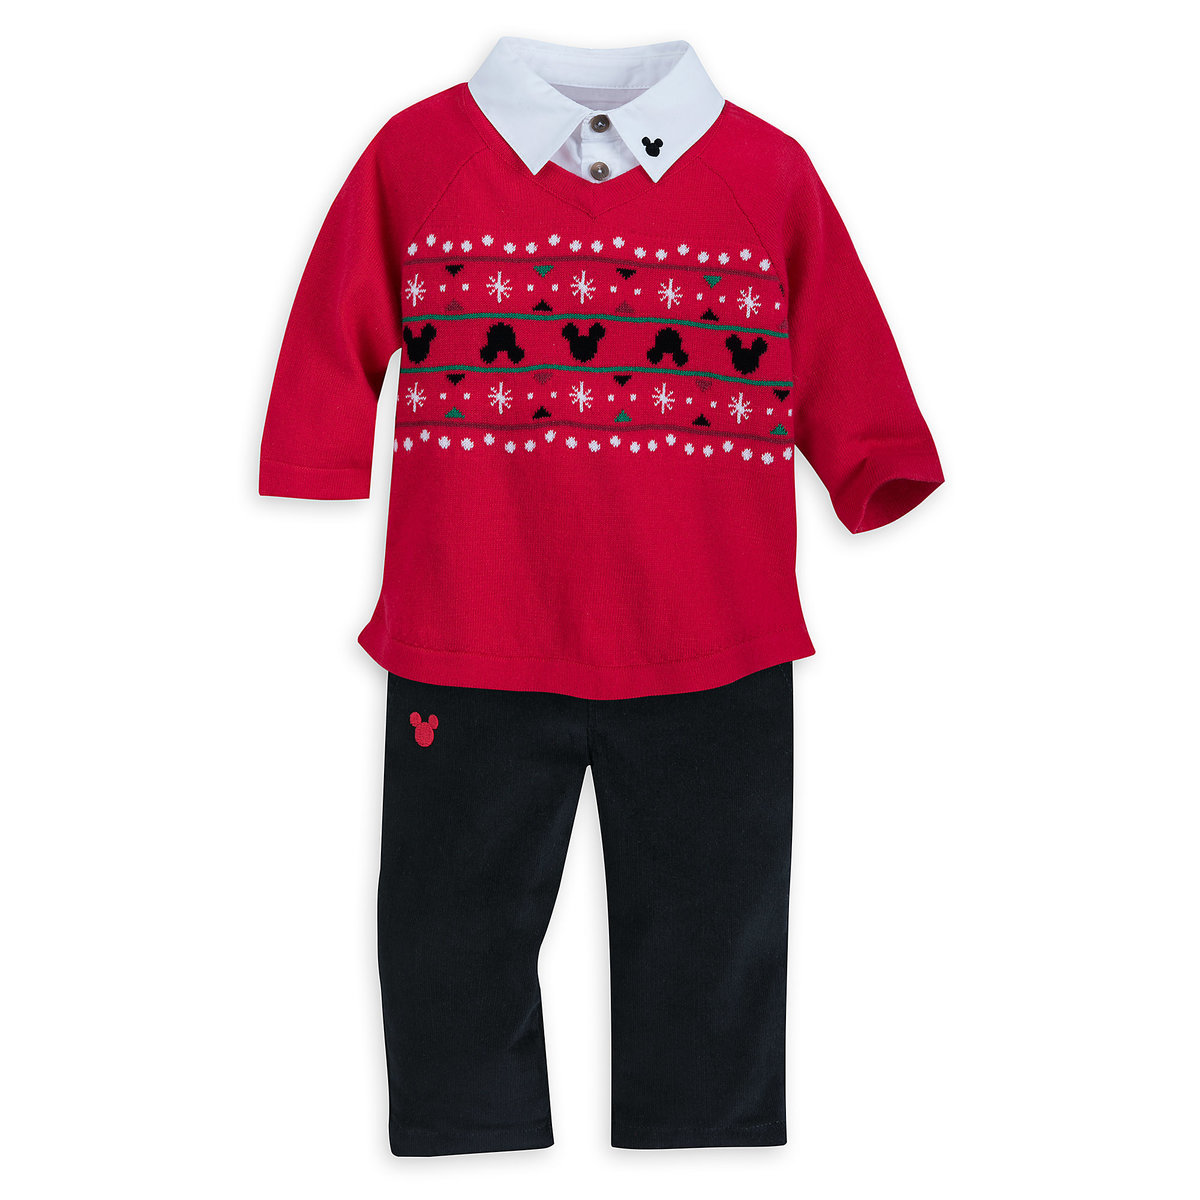 01921416a Product Image of Santa Mickey Mouse Sweater and Pants Set for Baby # 1